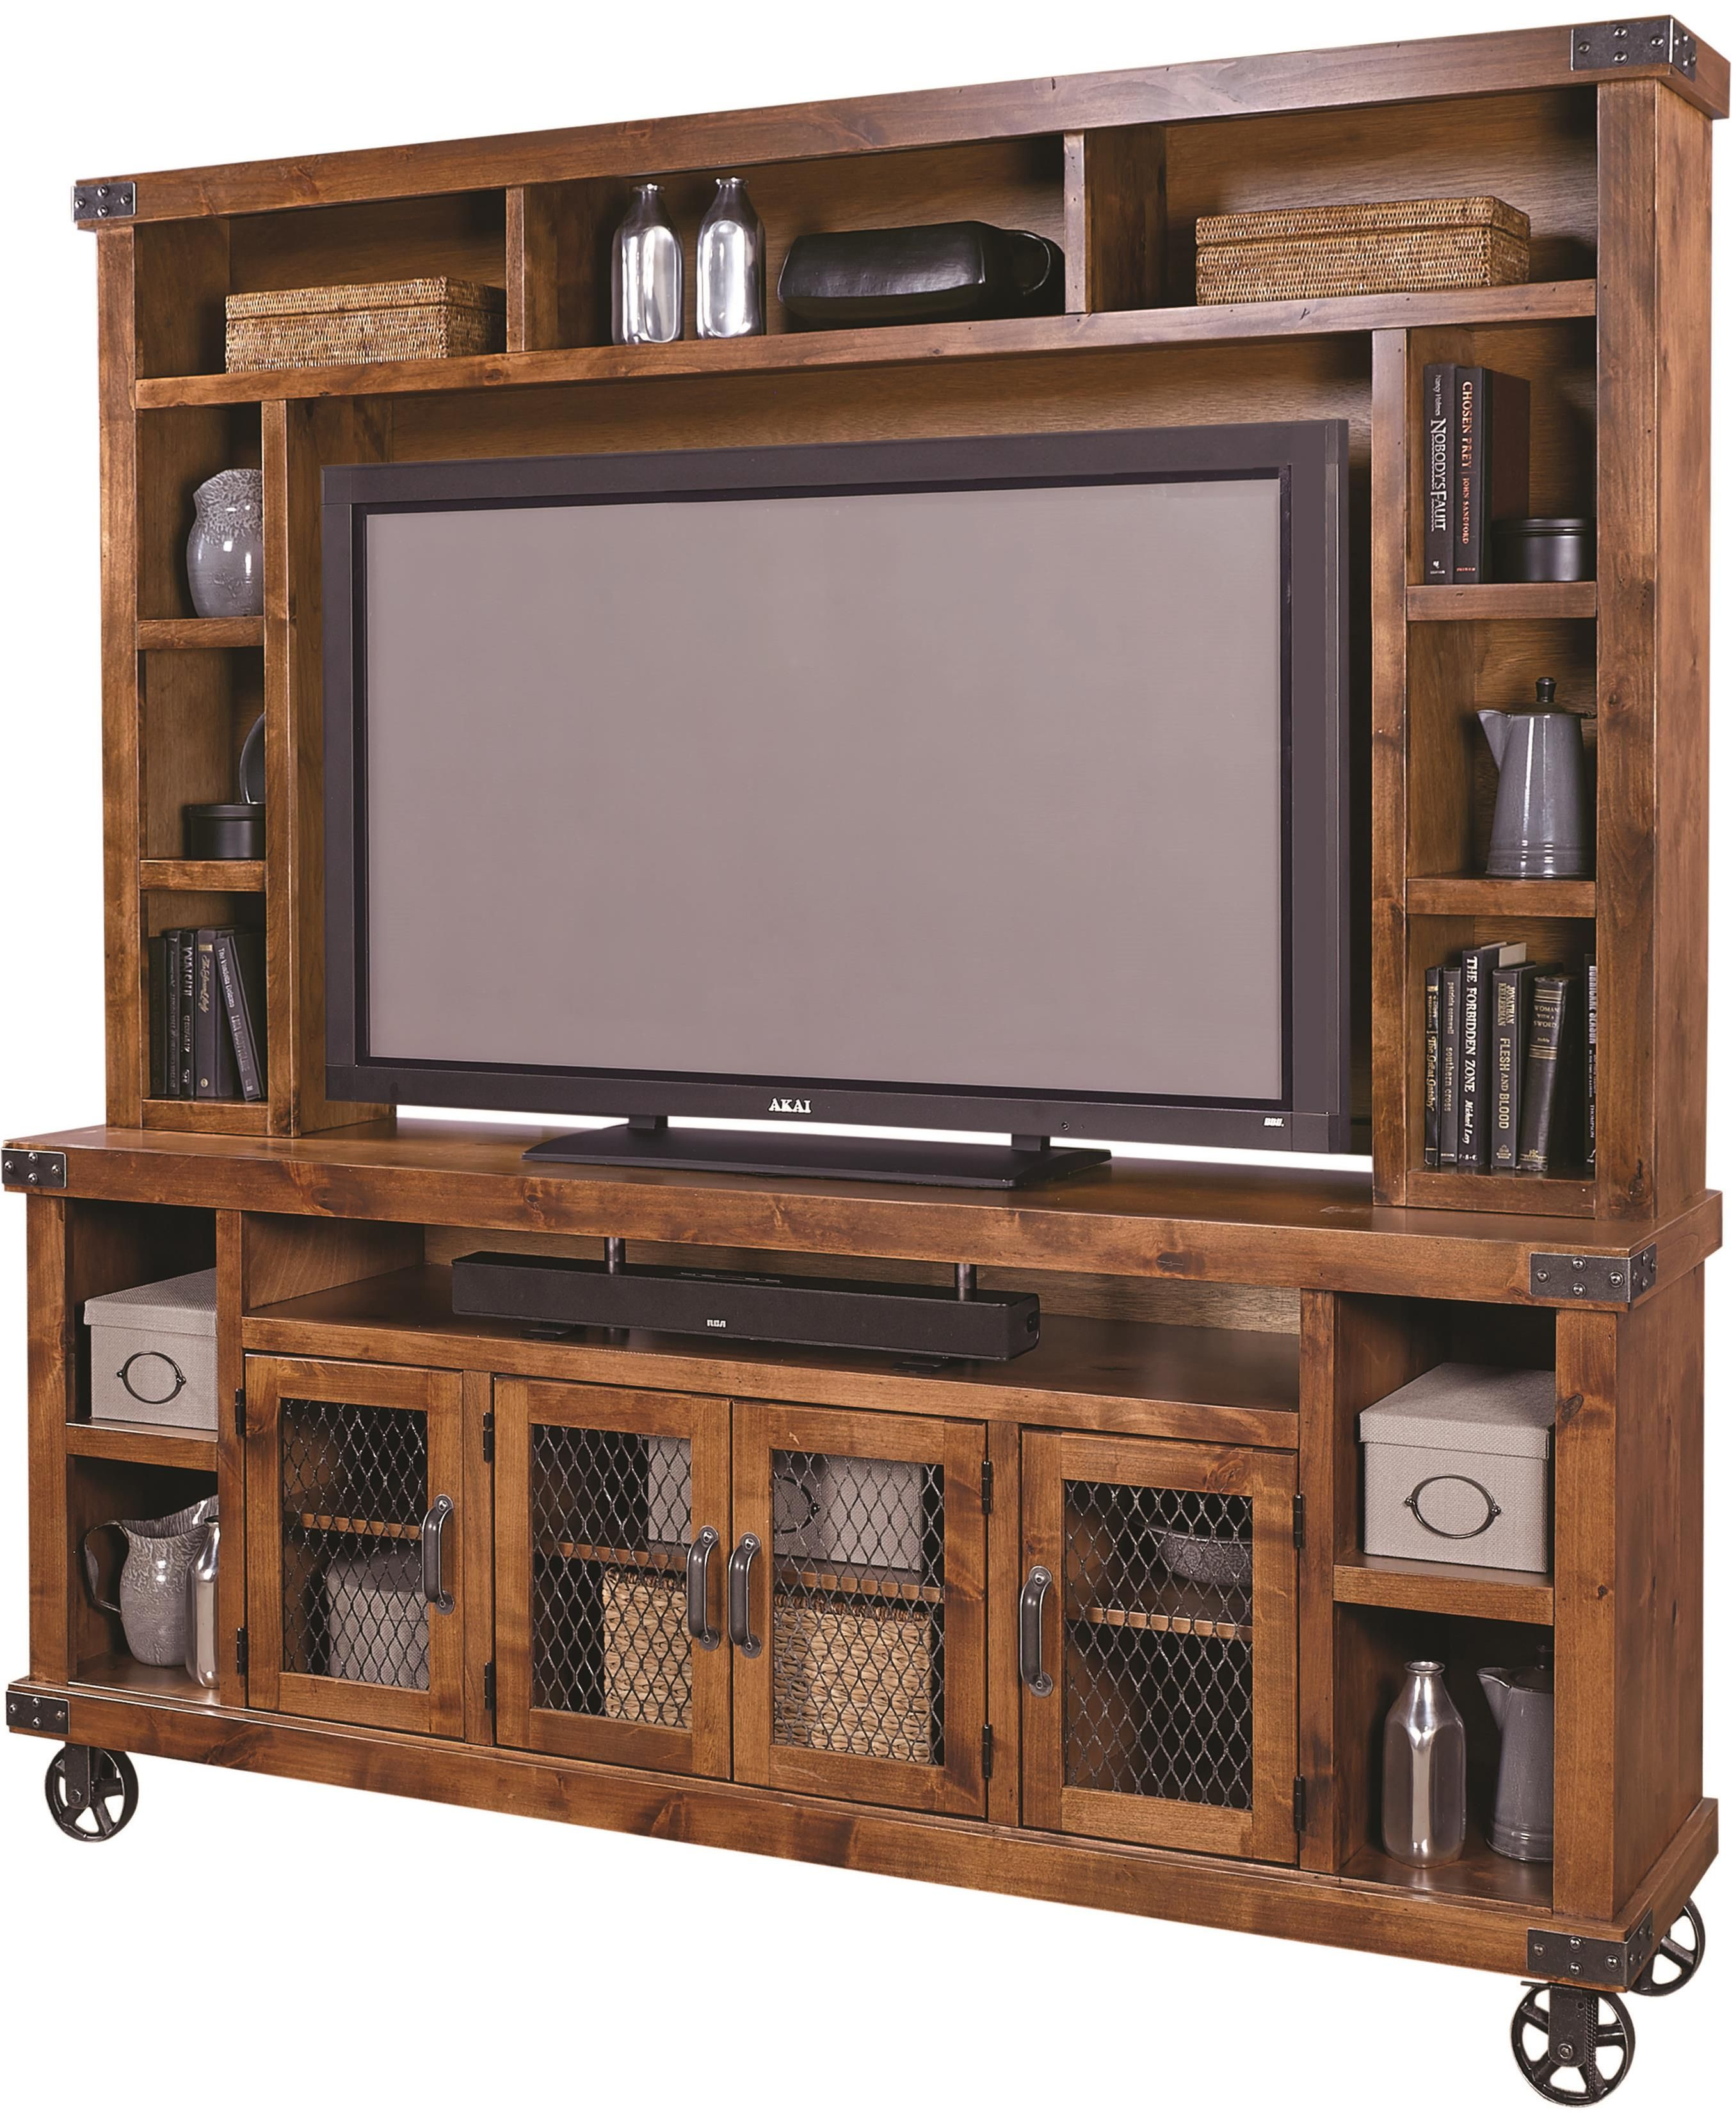 Rustic Industrial Style Entertainment Unit At Darvin Furniture  # Meuble Tv Home Cinema Industriel Diy